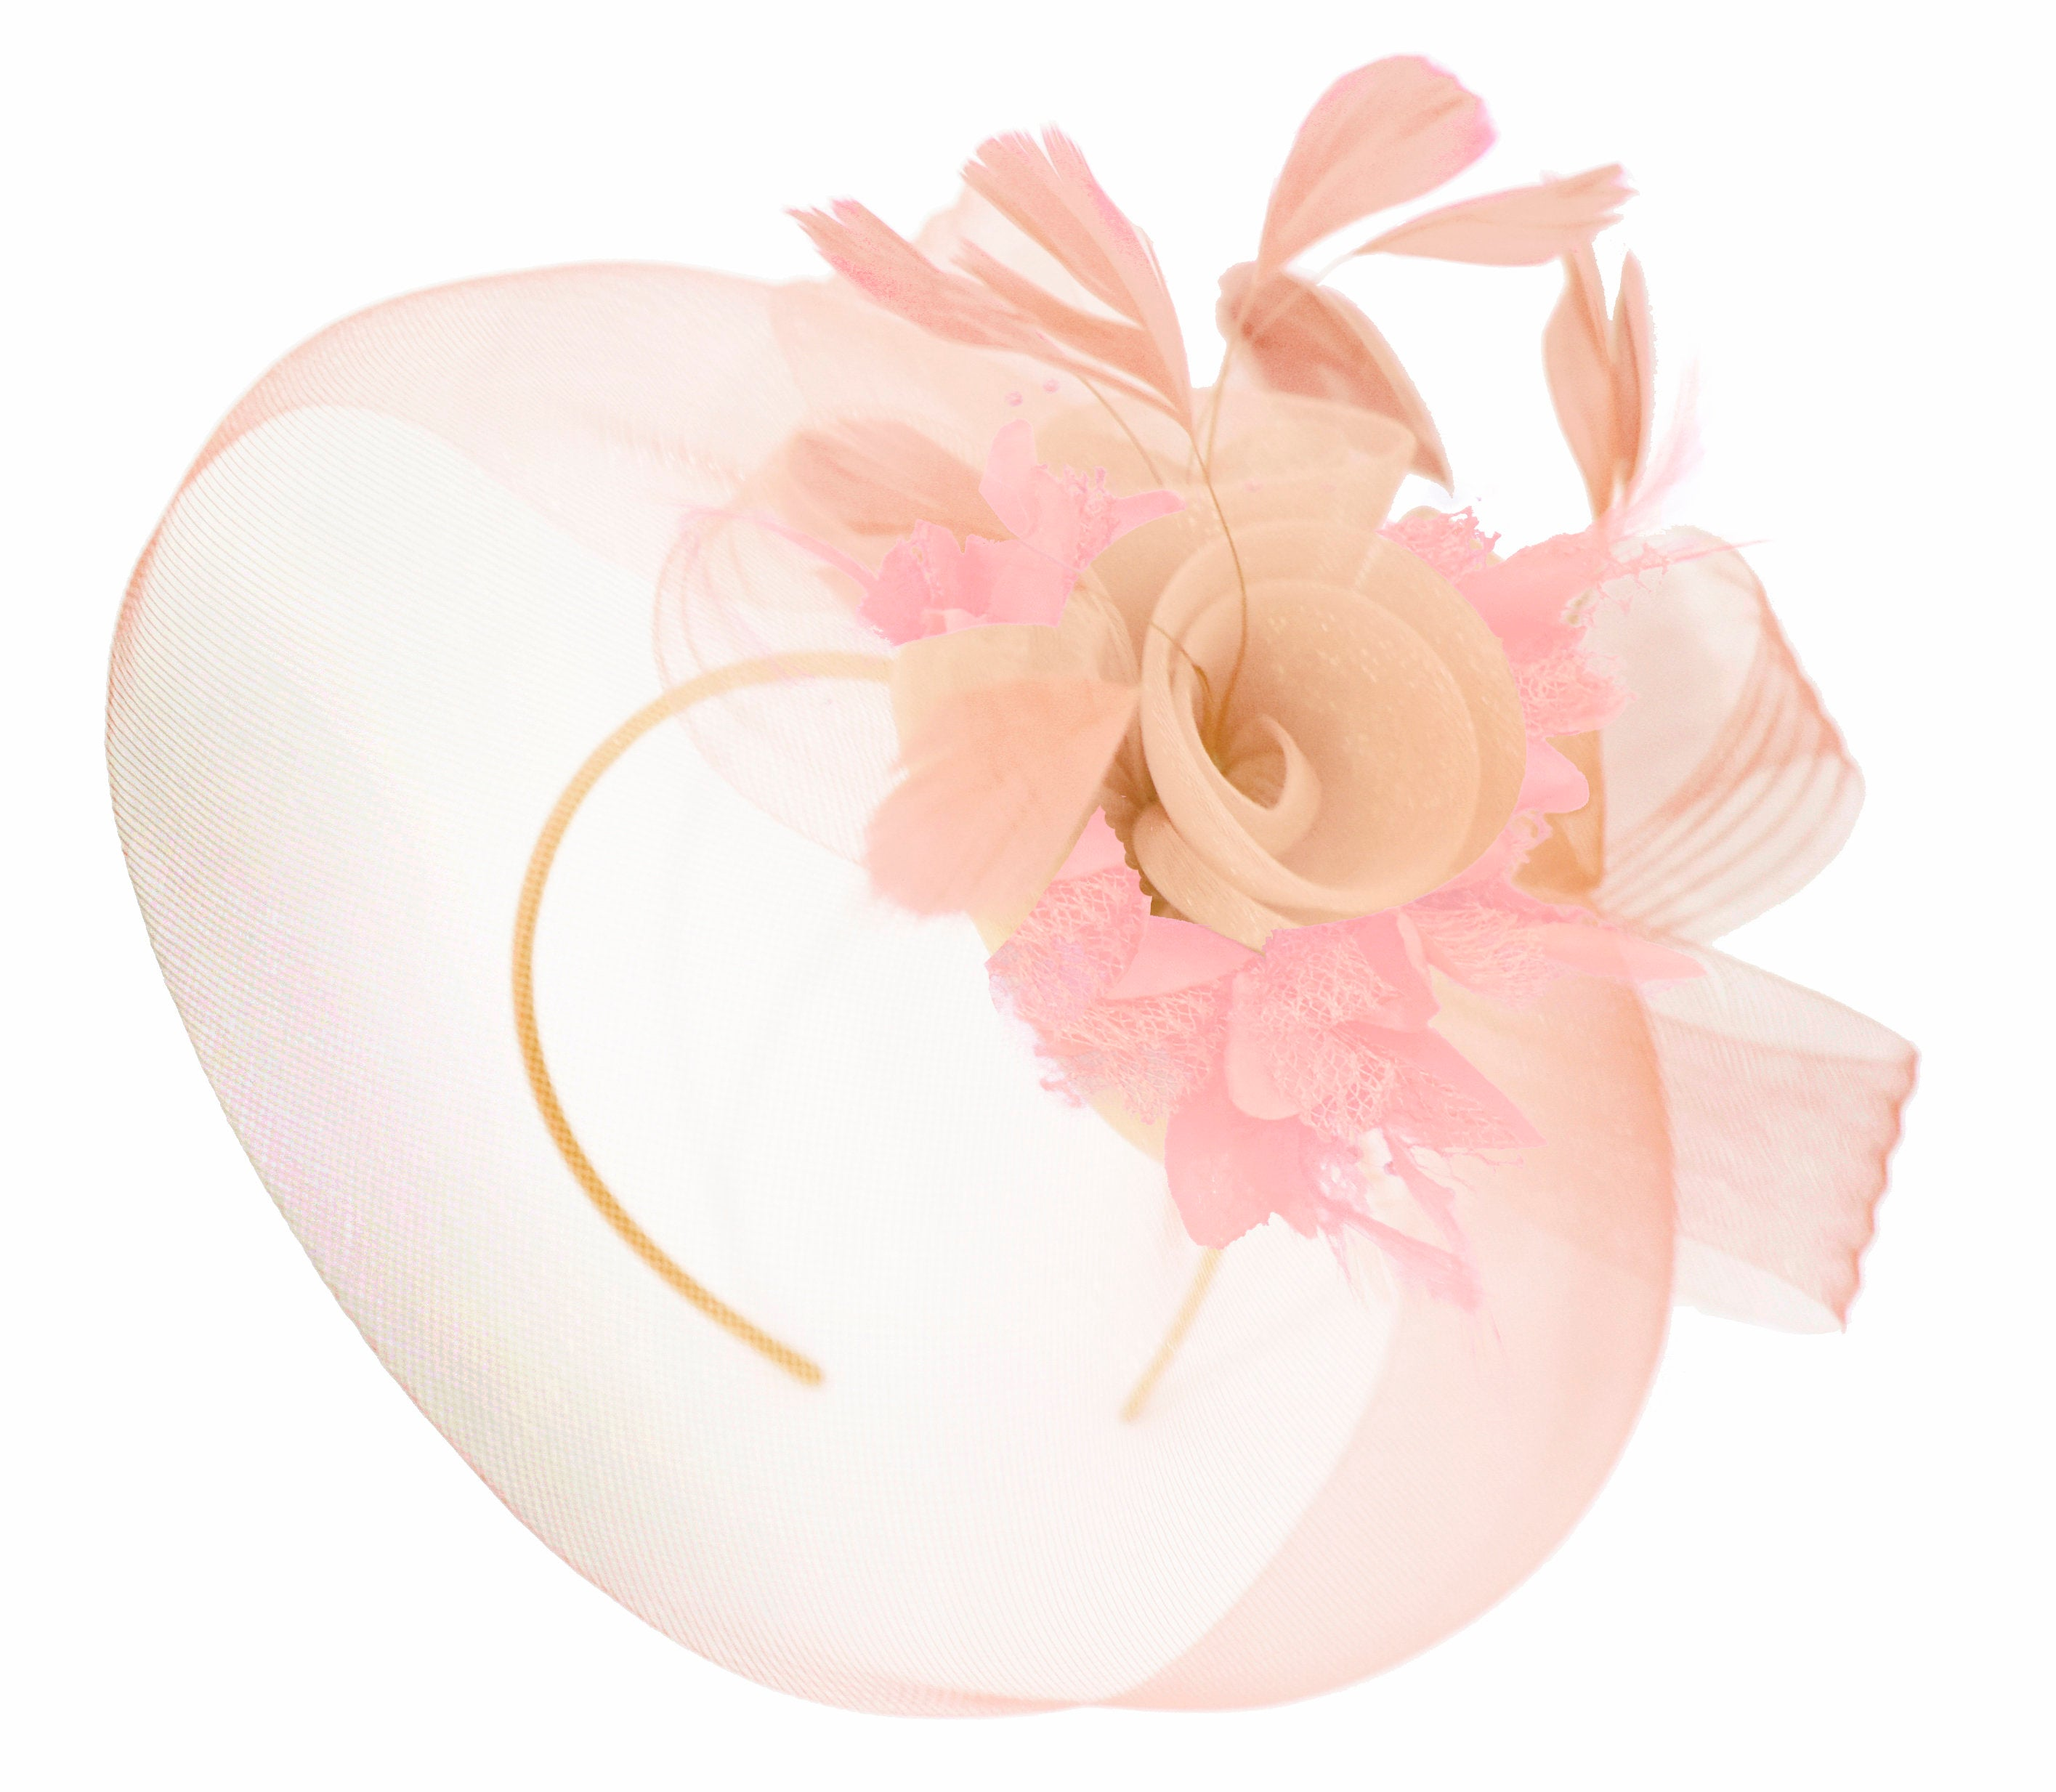 Caprilite Nude Pink Peach and Baby Pink Fascinator Hat Veil Net Hair Clip Ascot Derby Races Wedding Headband Feather Flower